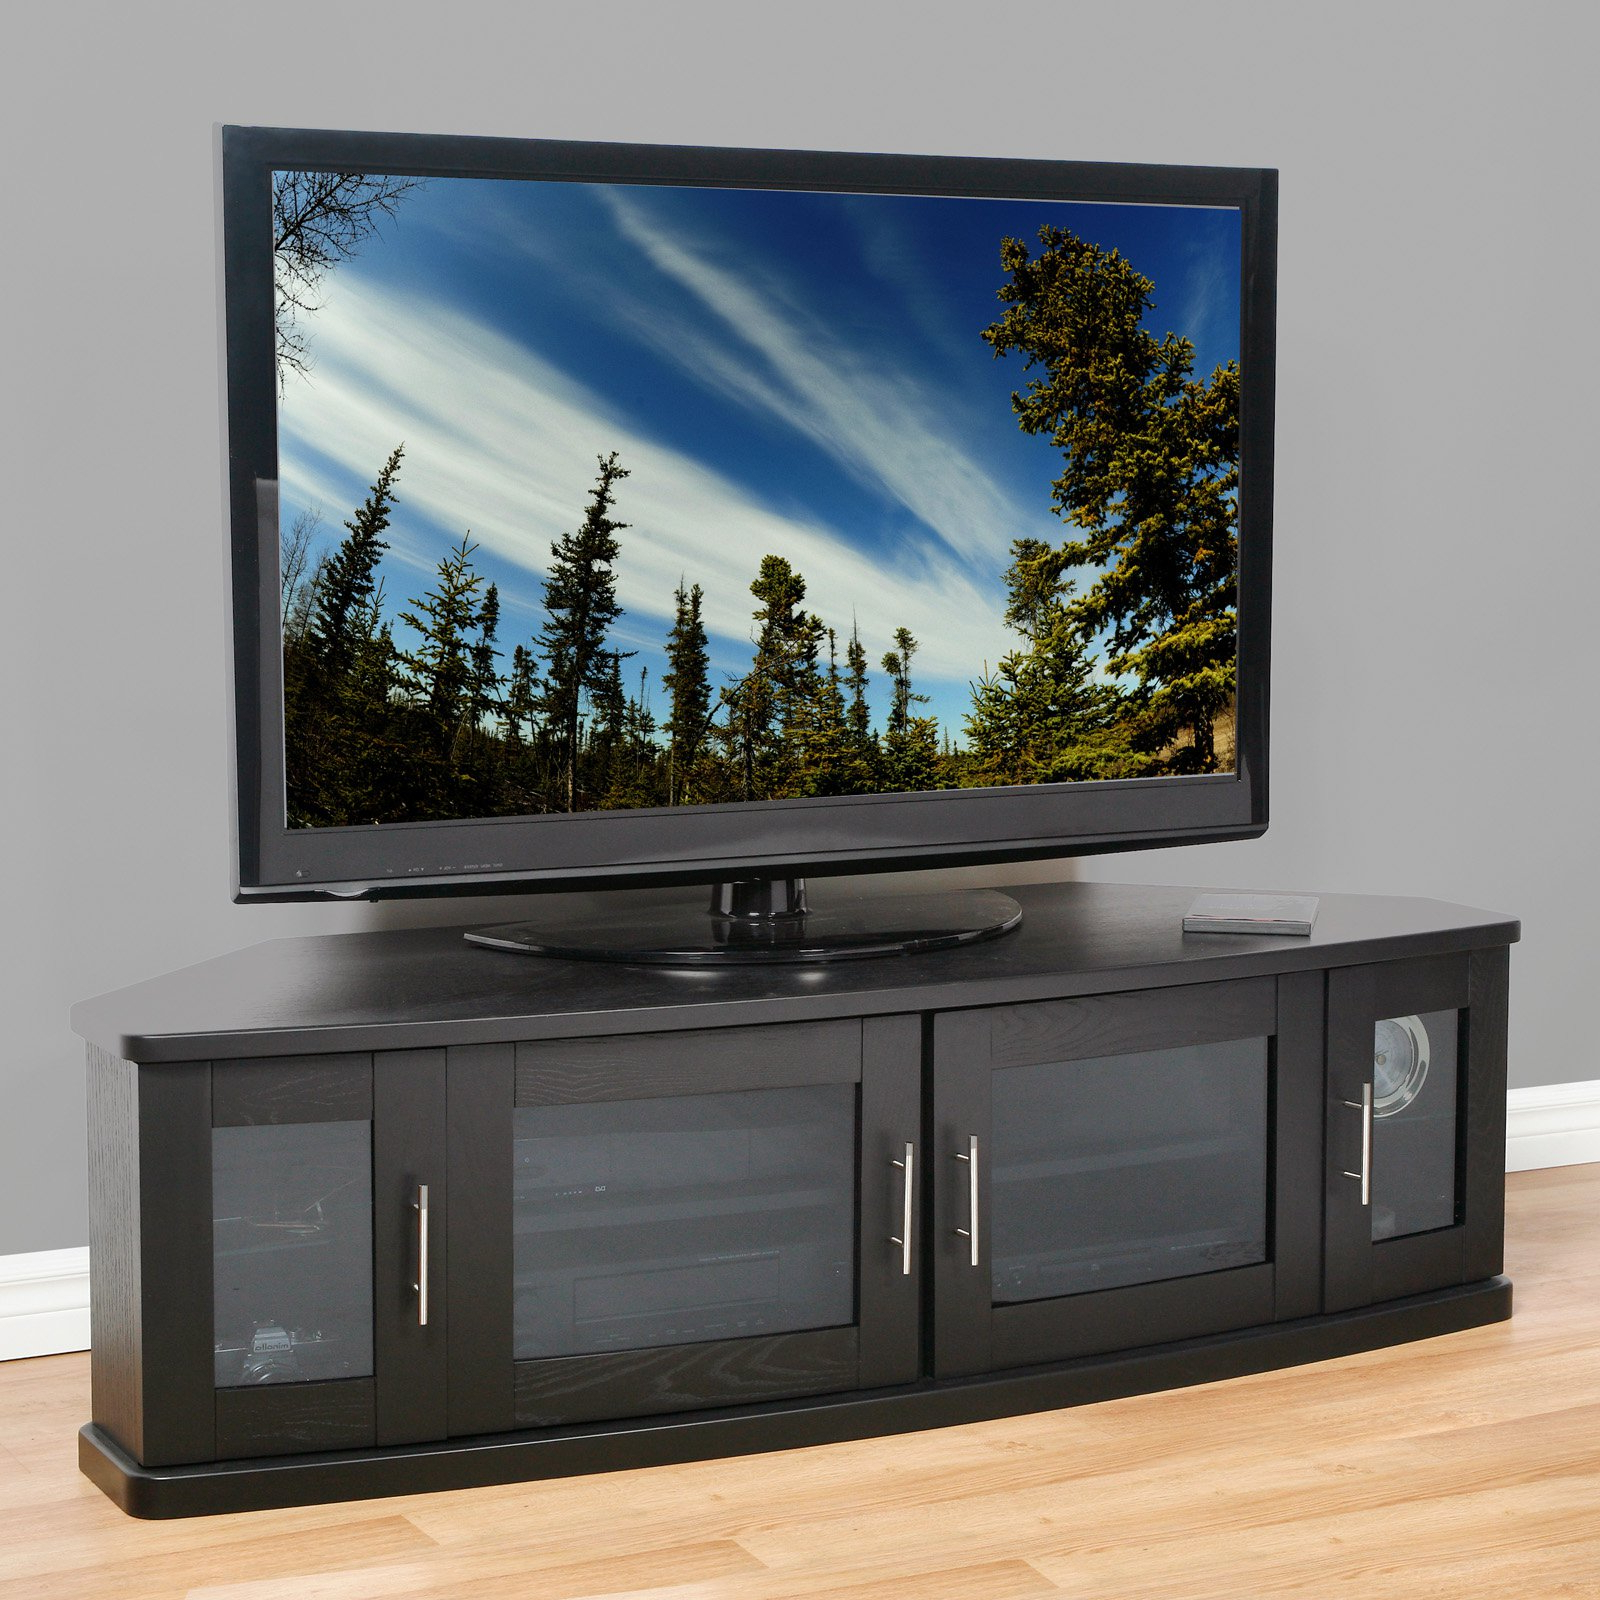 Corner Tv Stands For 60 Inch Tv Inside 2017 Plateau Newport 62 Inch Corner Tv Stand In Black – Walmart (View 5 of 20)